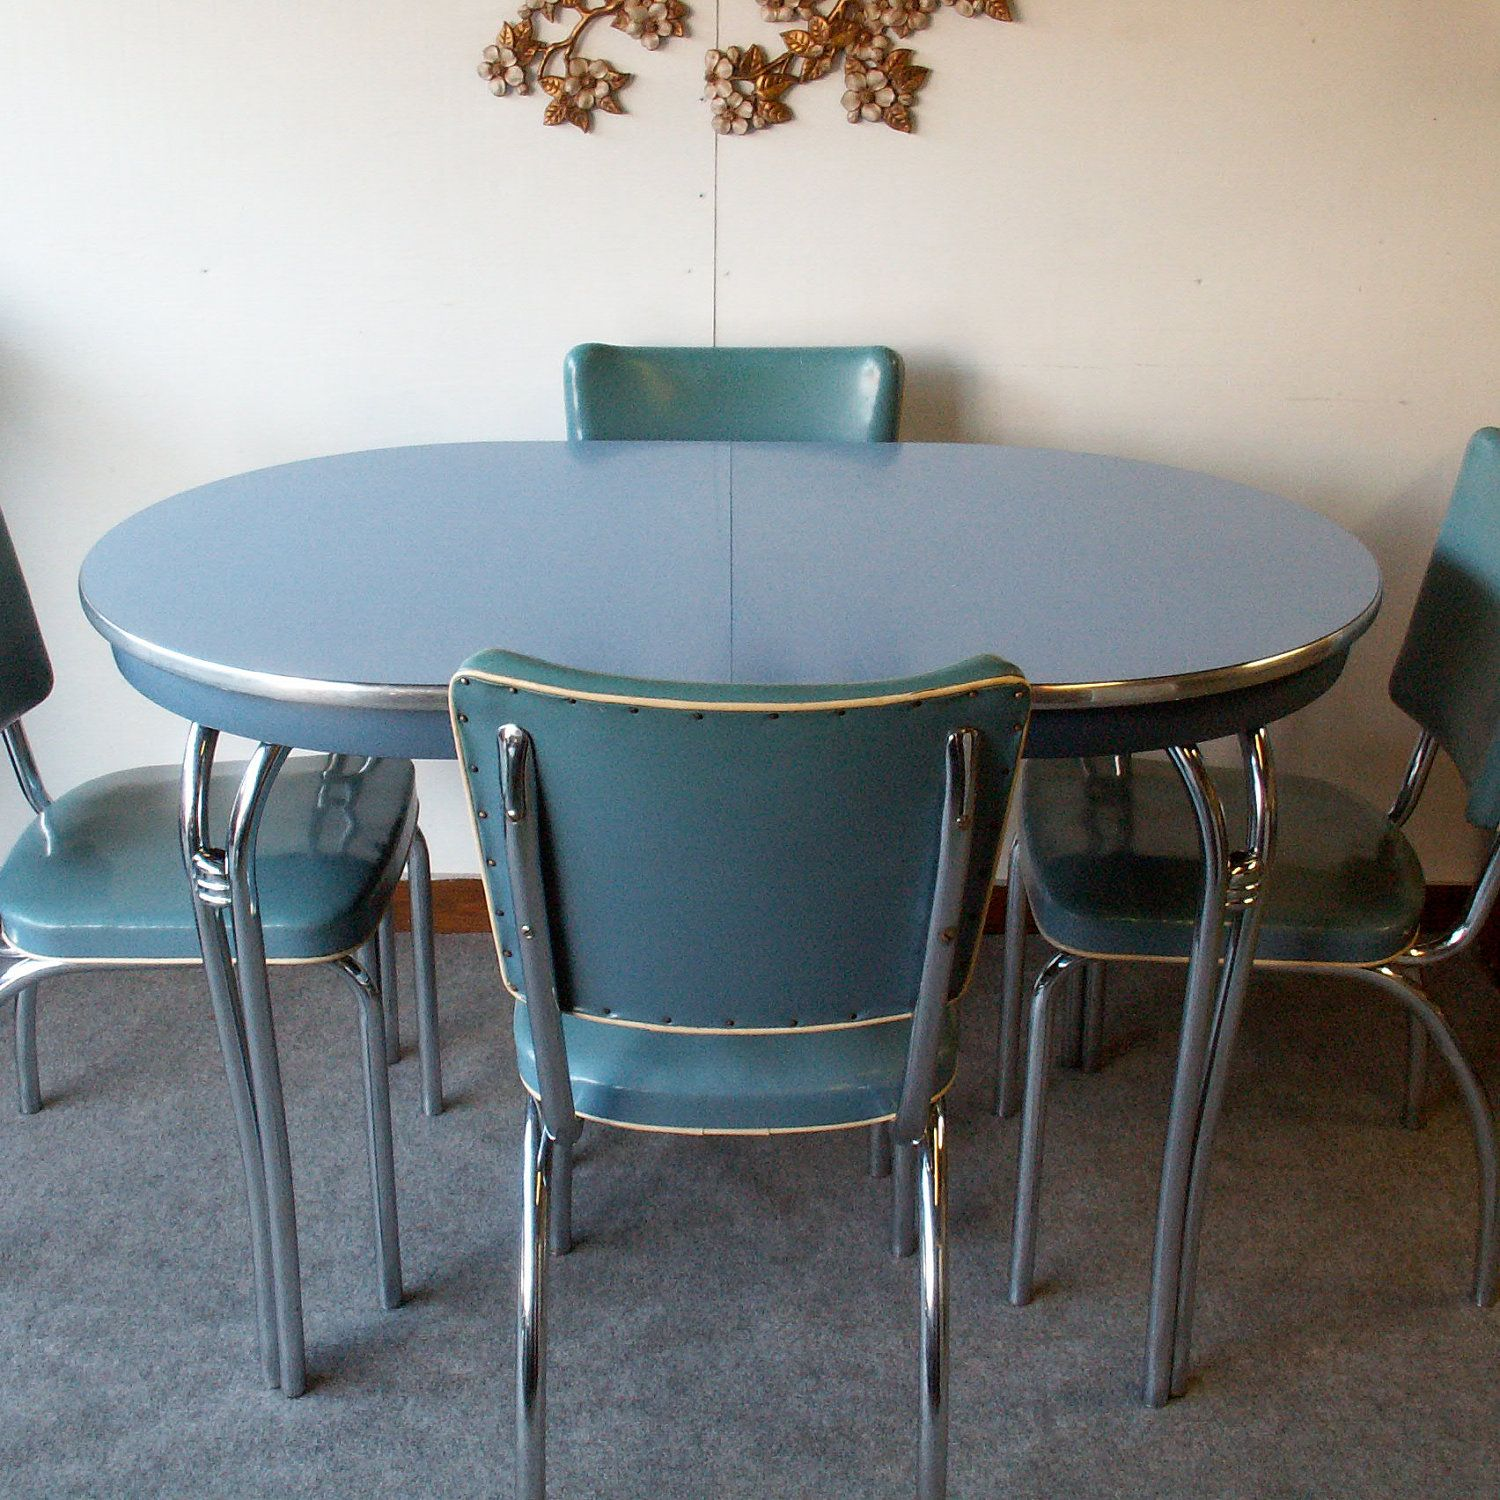 Vintage Blue Formica Table With Chairs Mesa Retro Mesas E